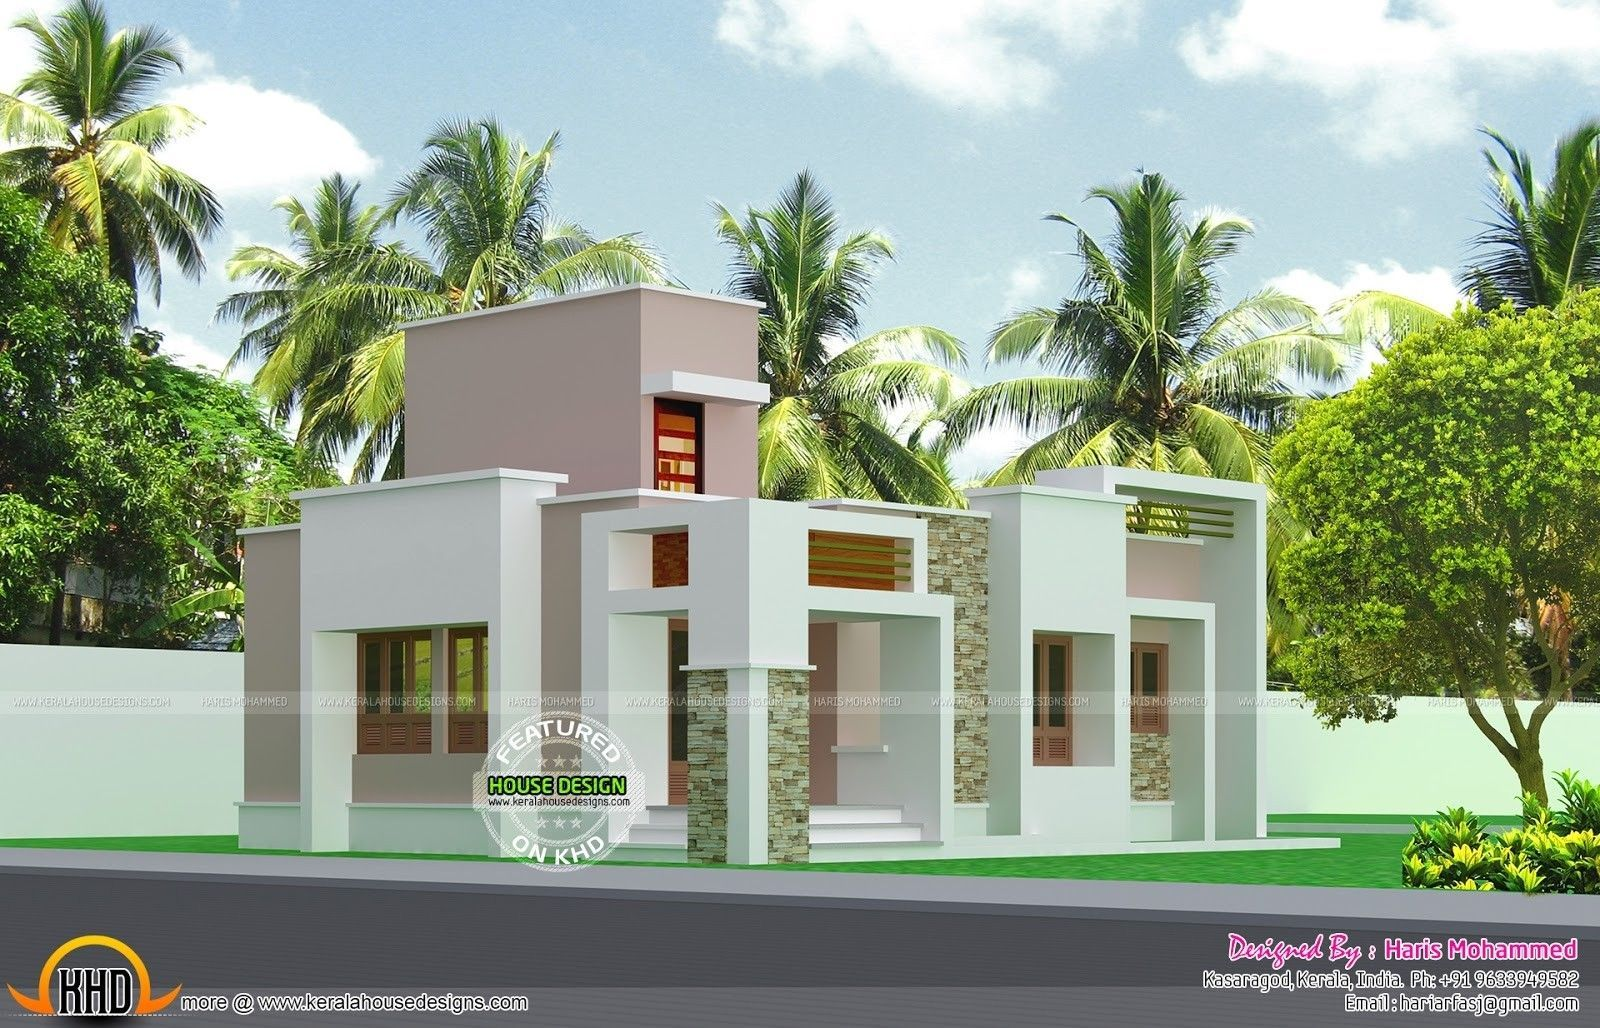 Small House 2 Story Design 21 Beautiful Low Cost Simple 2 Storey House Design Teppe Kerala House Design Single Floor House Design 2 Storey House Design